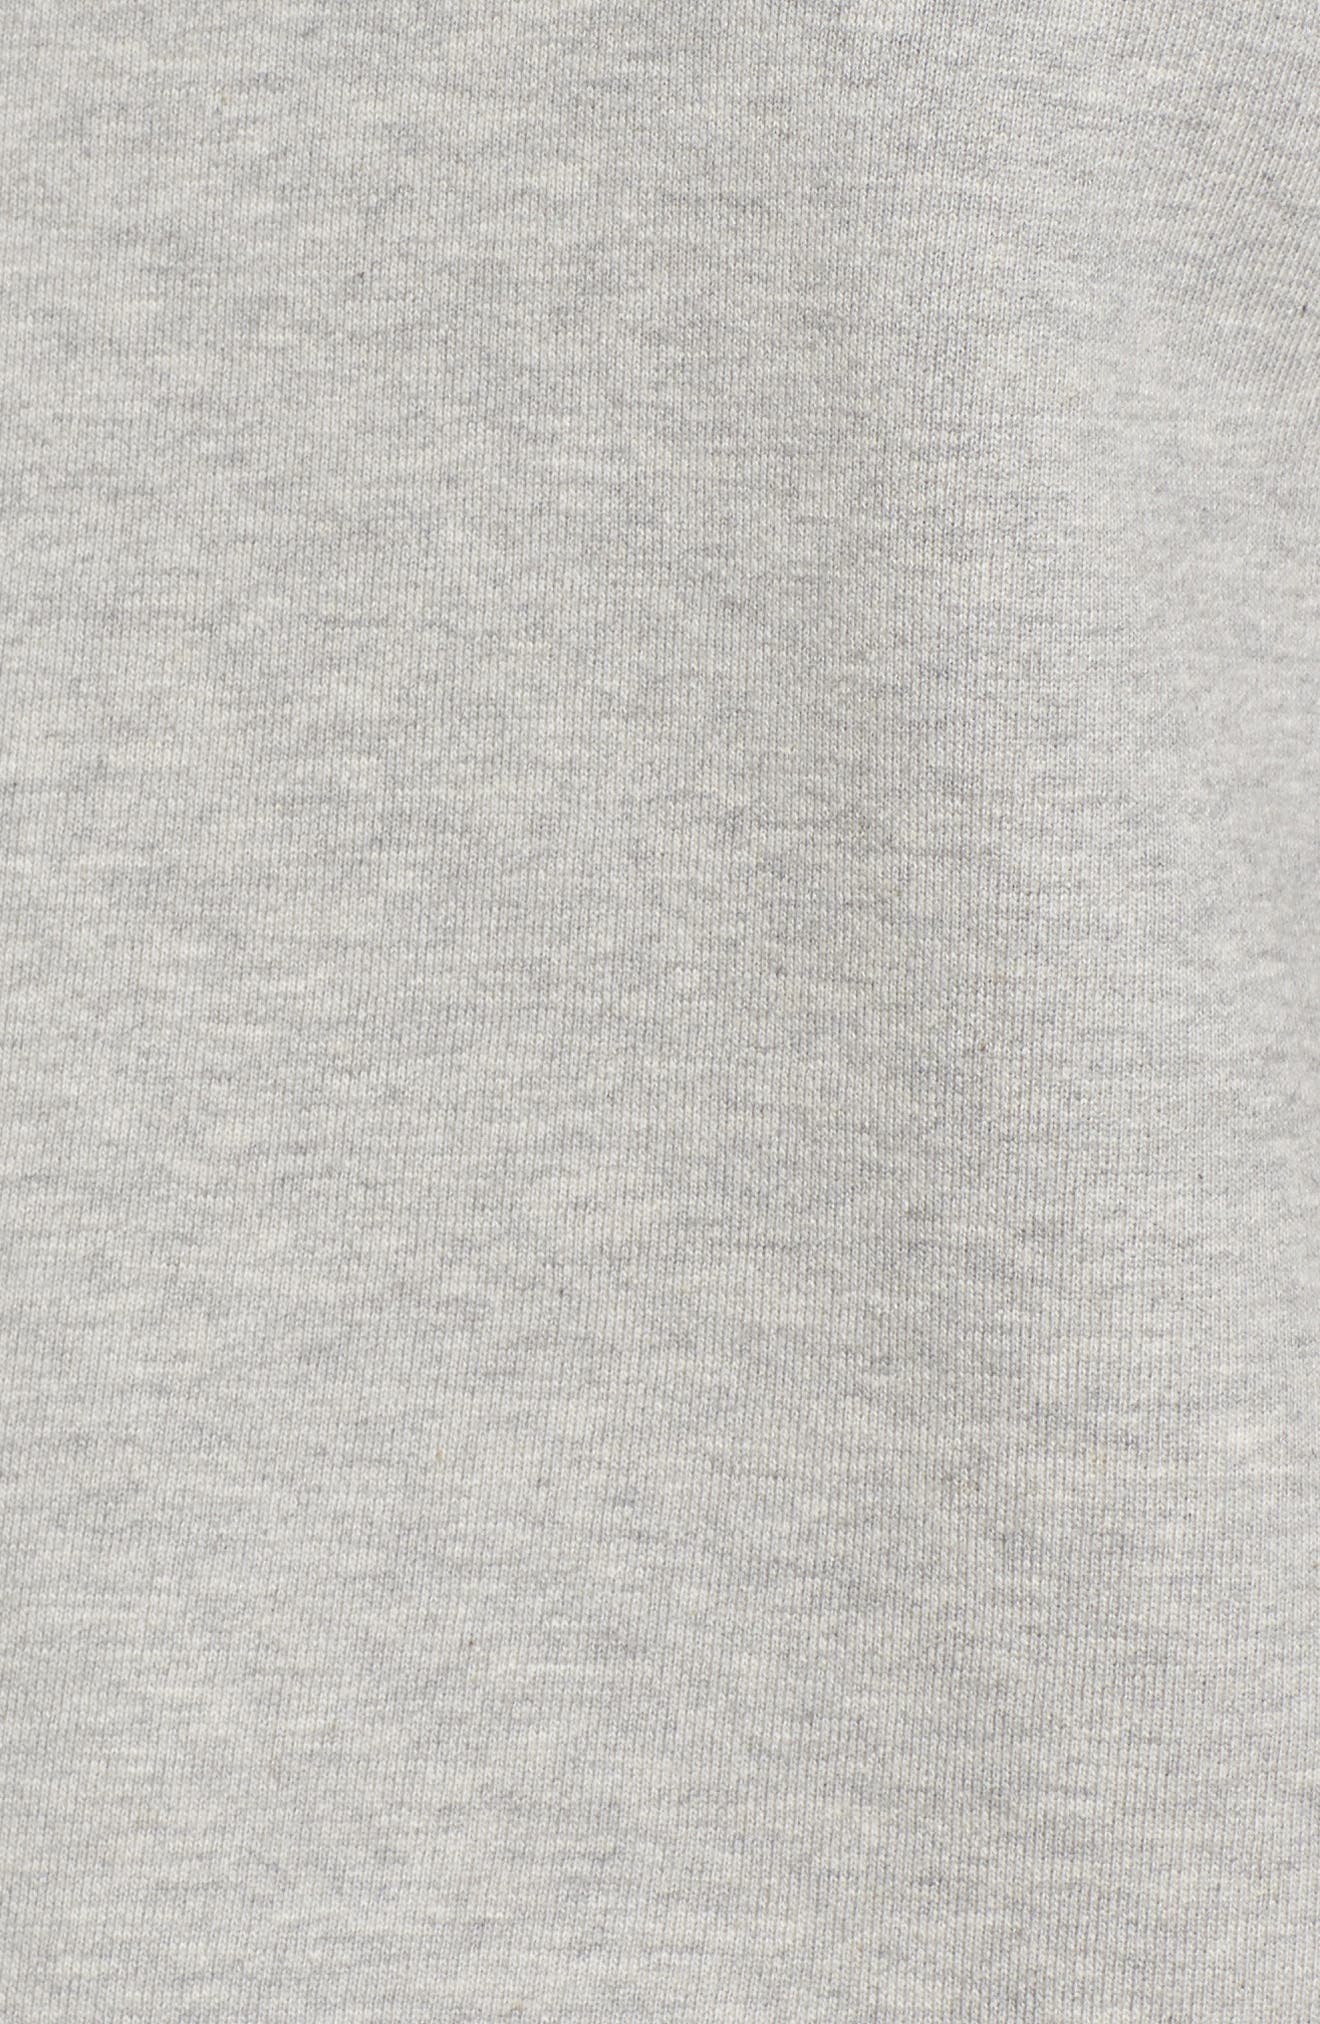 Out of Office Sweatshirt,                             Alternate thumbnail 5, color,                             039